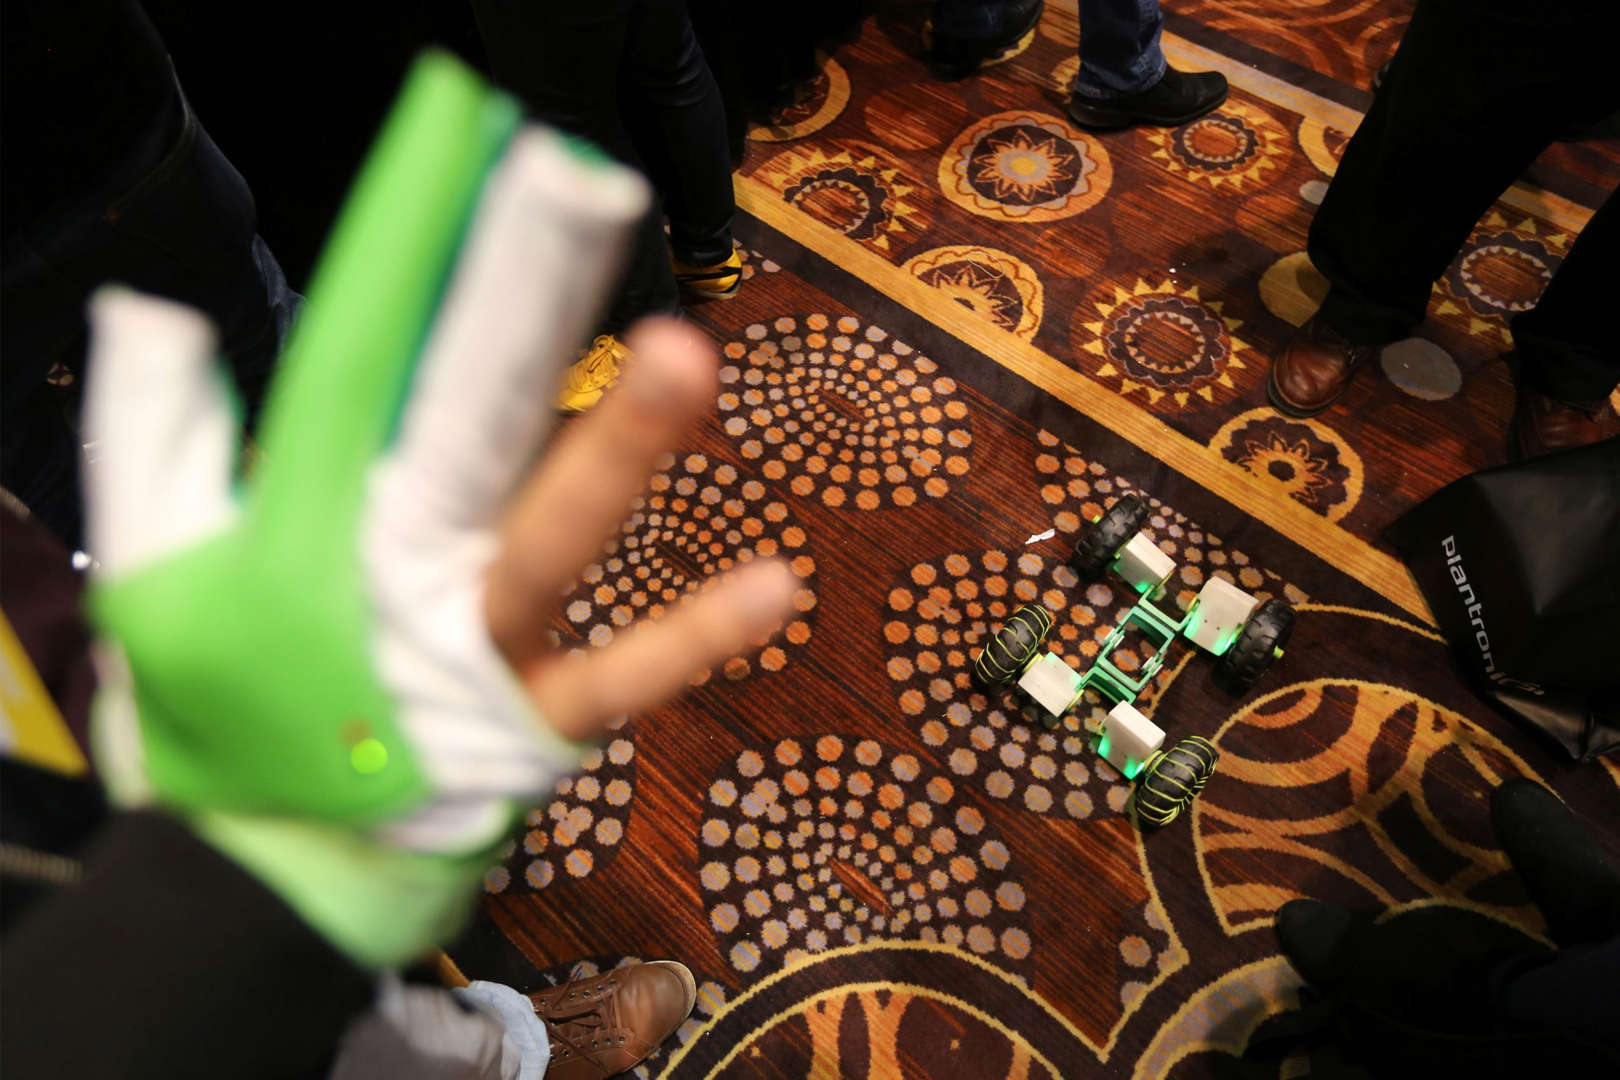 A Zero hand-controlled robotics kit is used on the floor of The CES Unveiled press event, January 4, 2016 in Las Vegas, Nevada ahead of the CES 2016 Consumer Electronics Show. CES, the annual consumer electronics and consumer technology tradeshow in Las Vegas boasts some 2.2 million net square feet (204,386 square meters) of exhibition space. AFP PHOTO / DAVID MCNEW / AFP / DAVID MCNEW (Photo credit should read DAVID MCNEW/AFP/Getty Images)